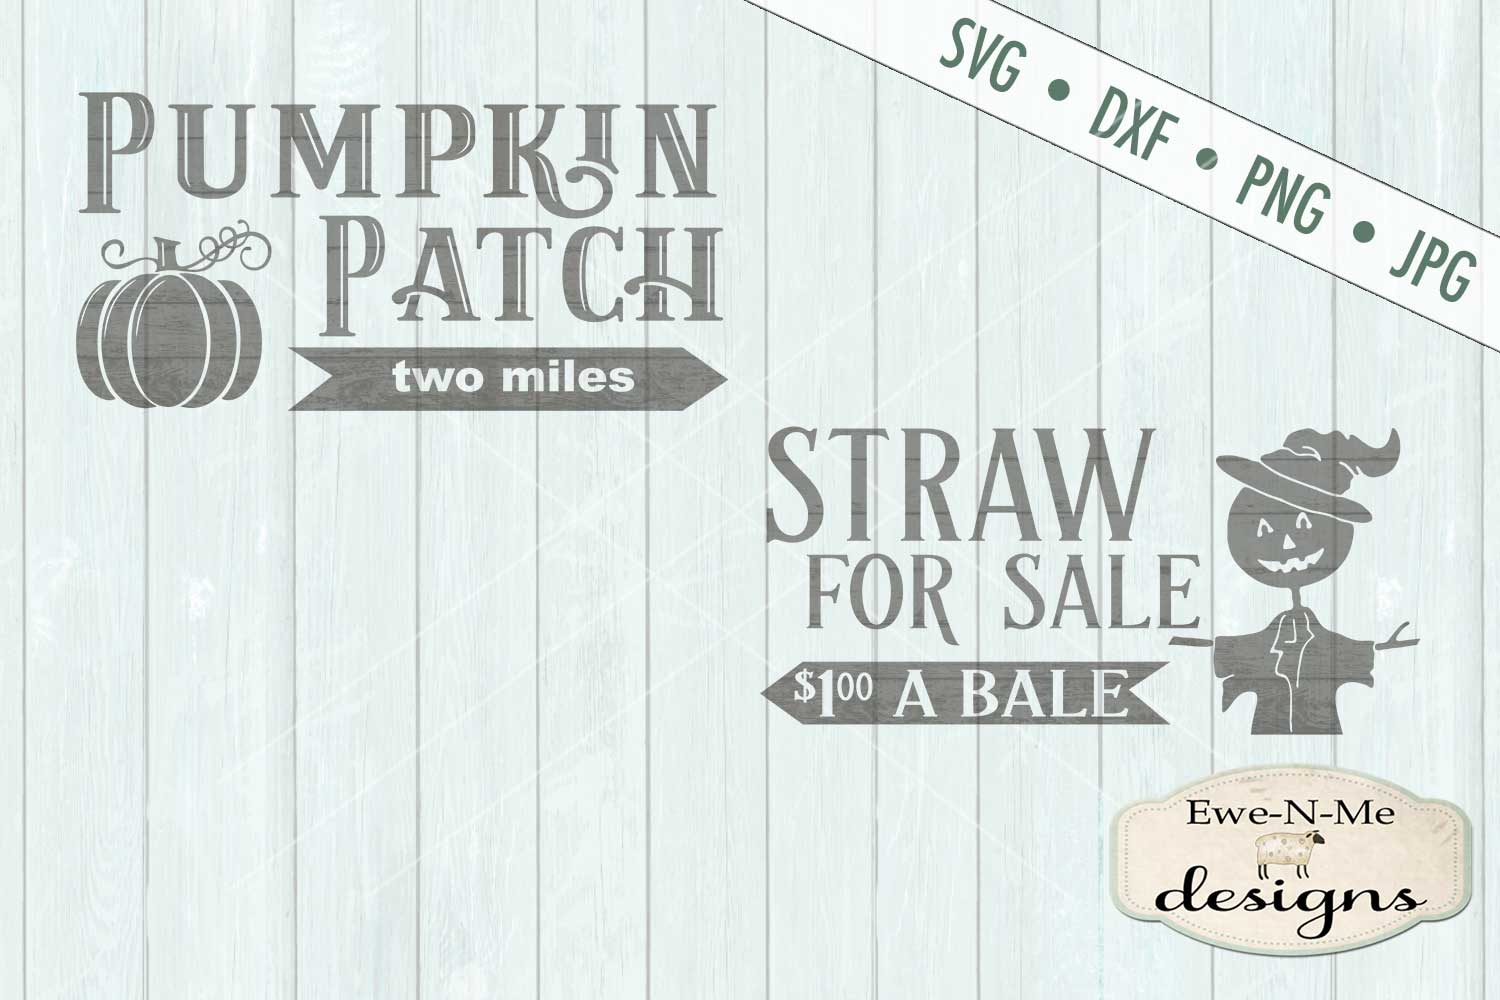 Pumpkin Patch Straw For Sale Scarecrow SVG DXF Files example image 2